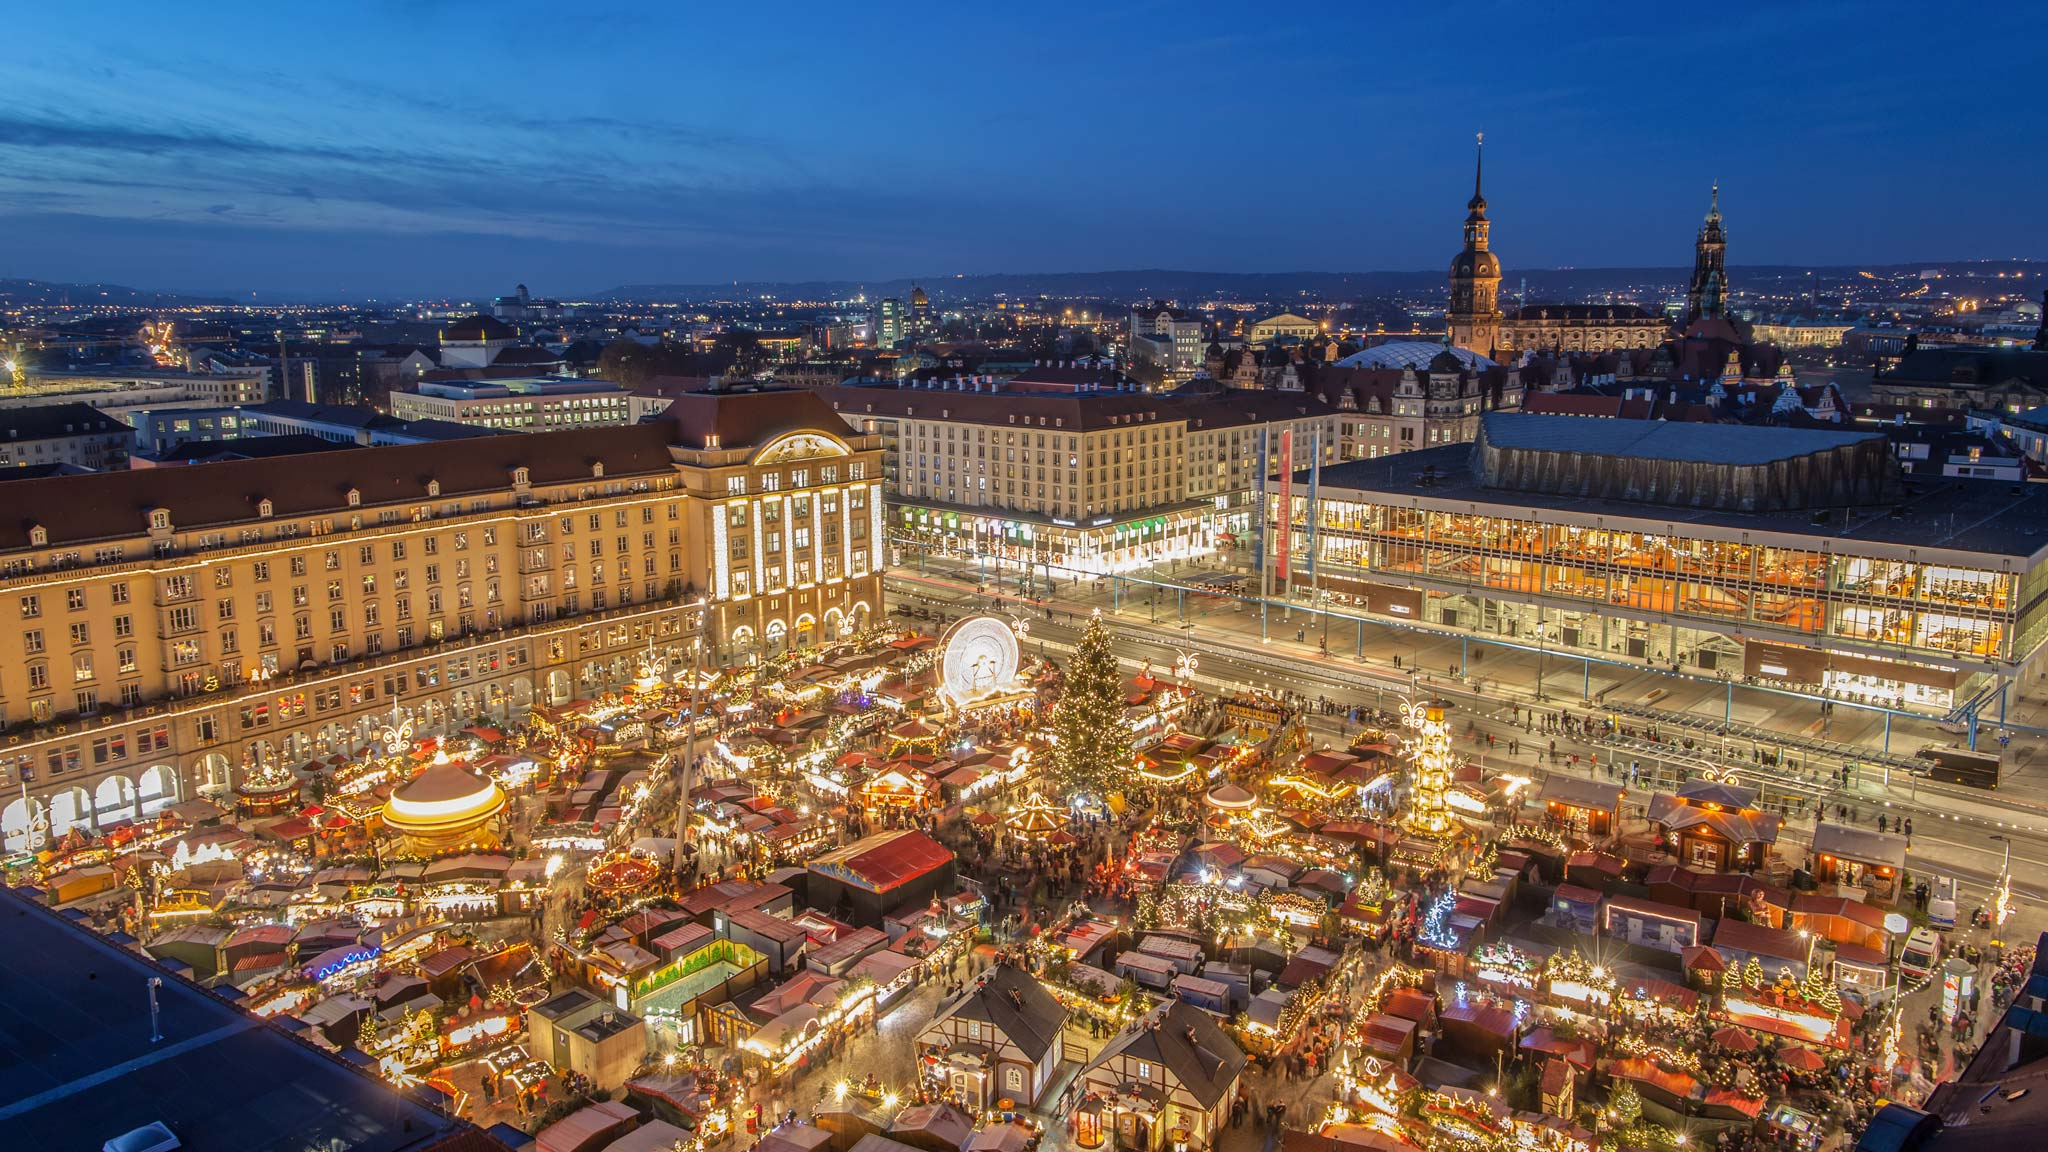 Dresden Christmas Markets Dates 2020 Discovering the Dresden Christmas markets and Saxony festivities